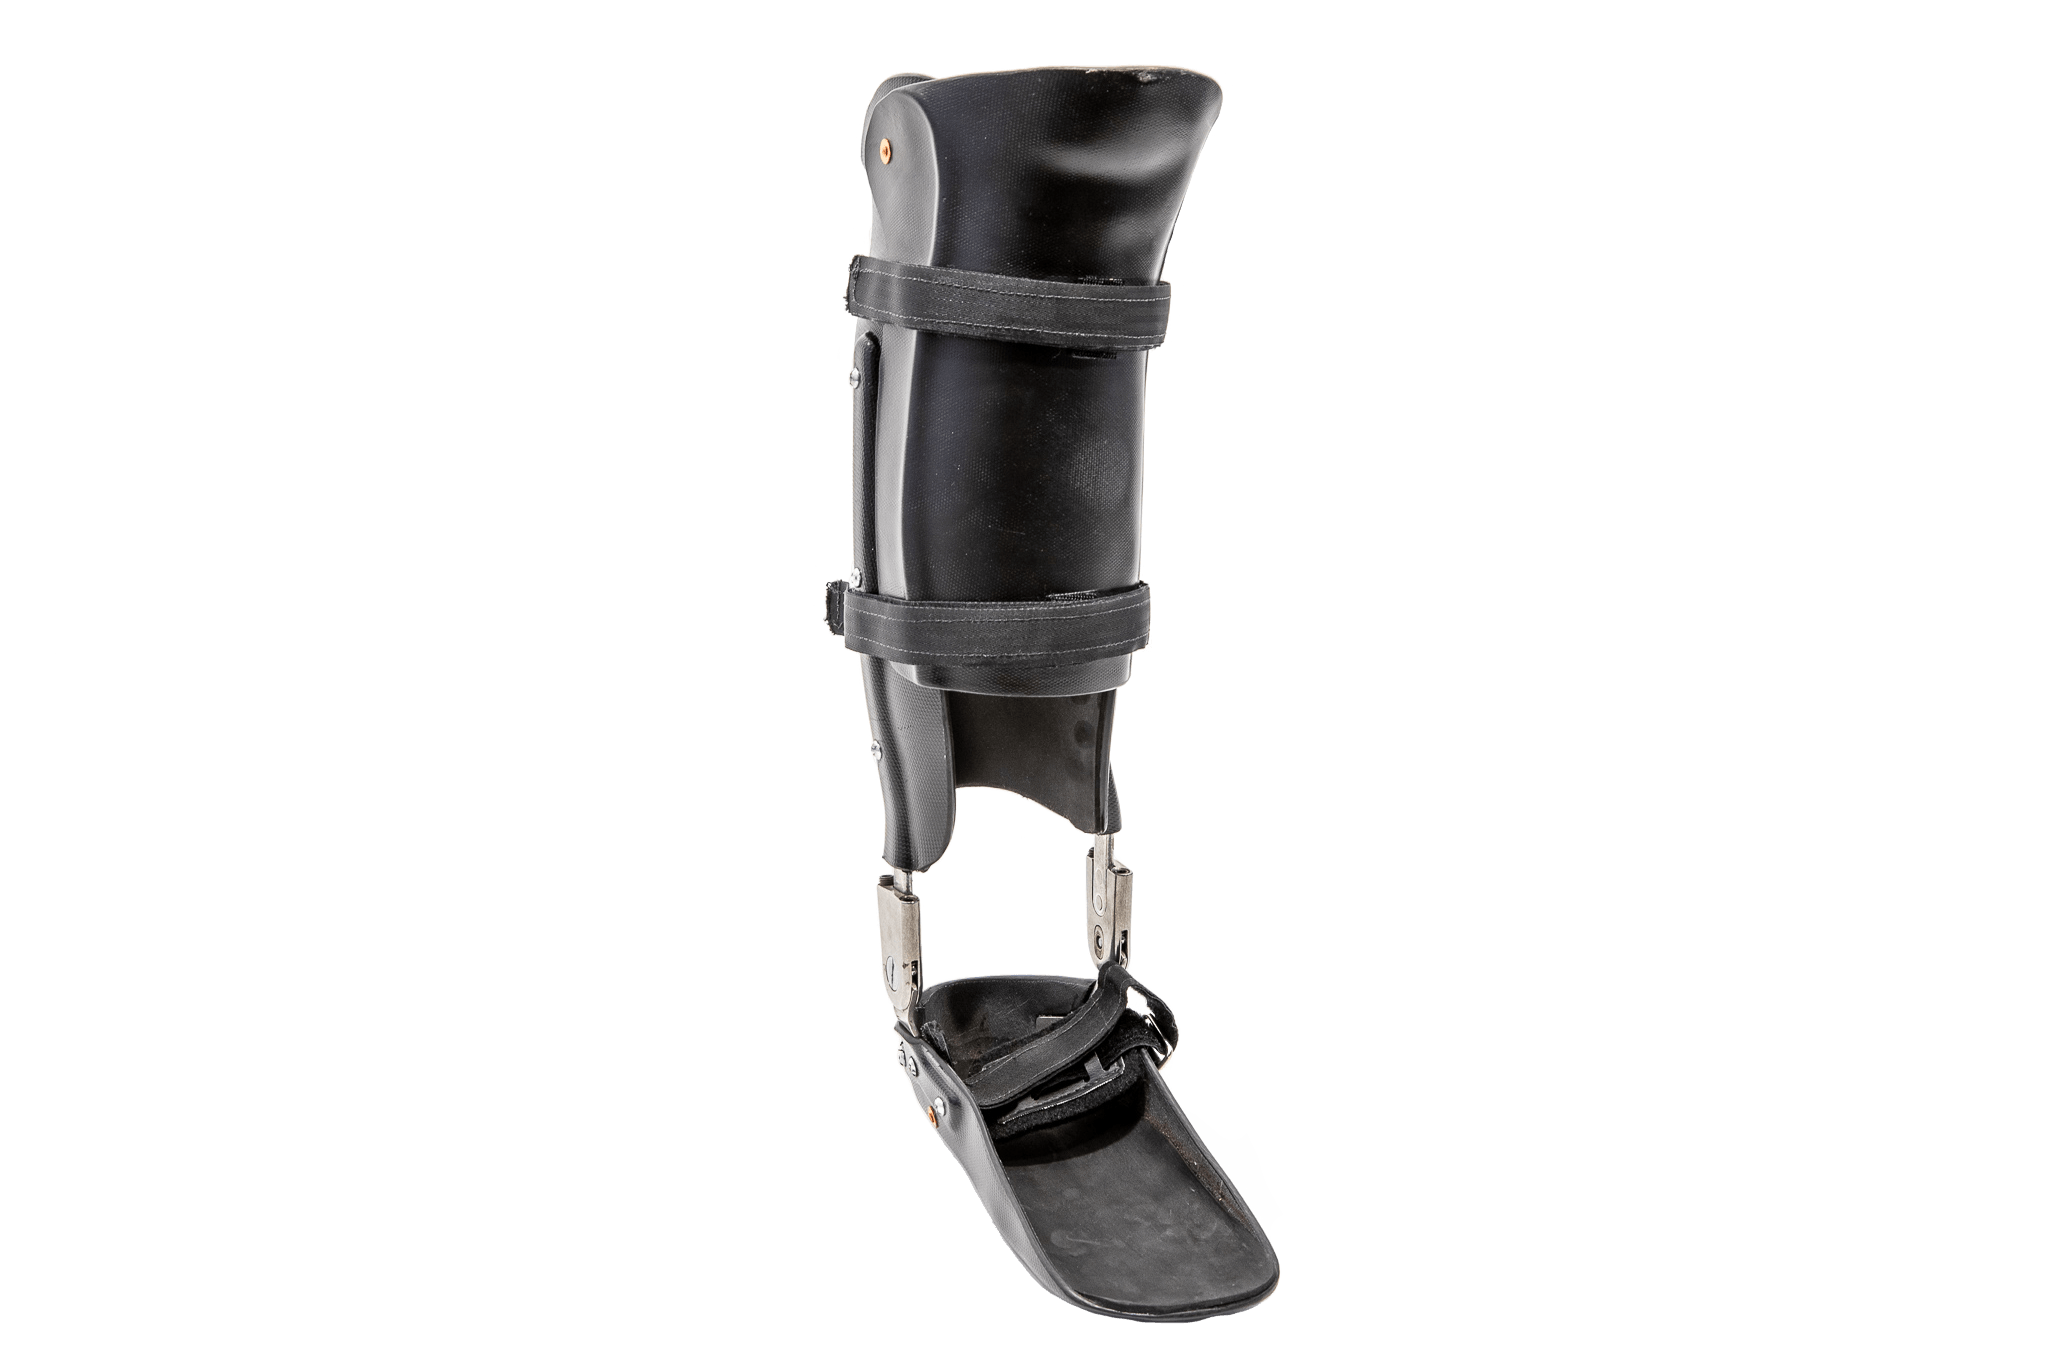 An ankle and foot orthotic.